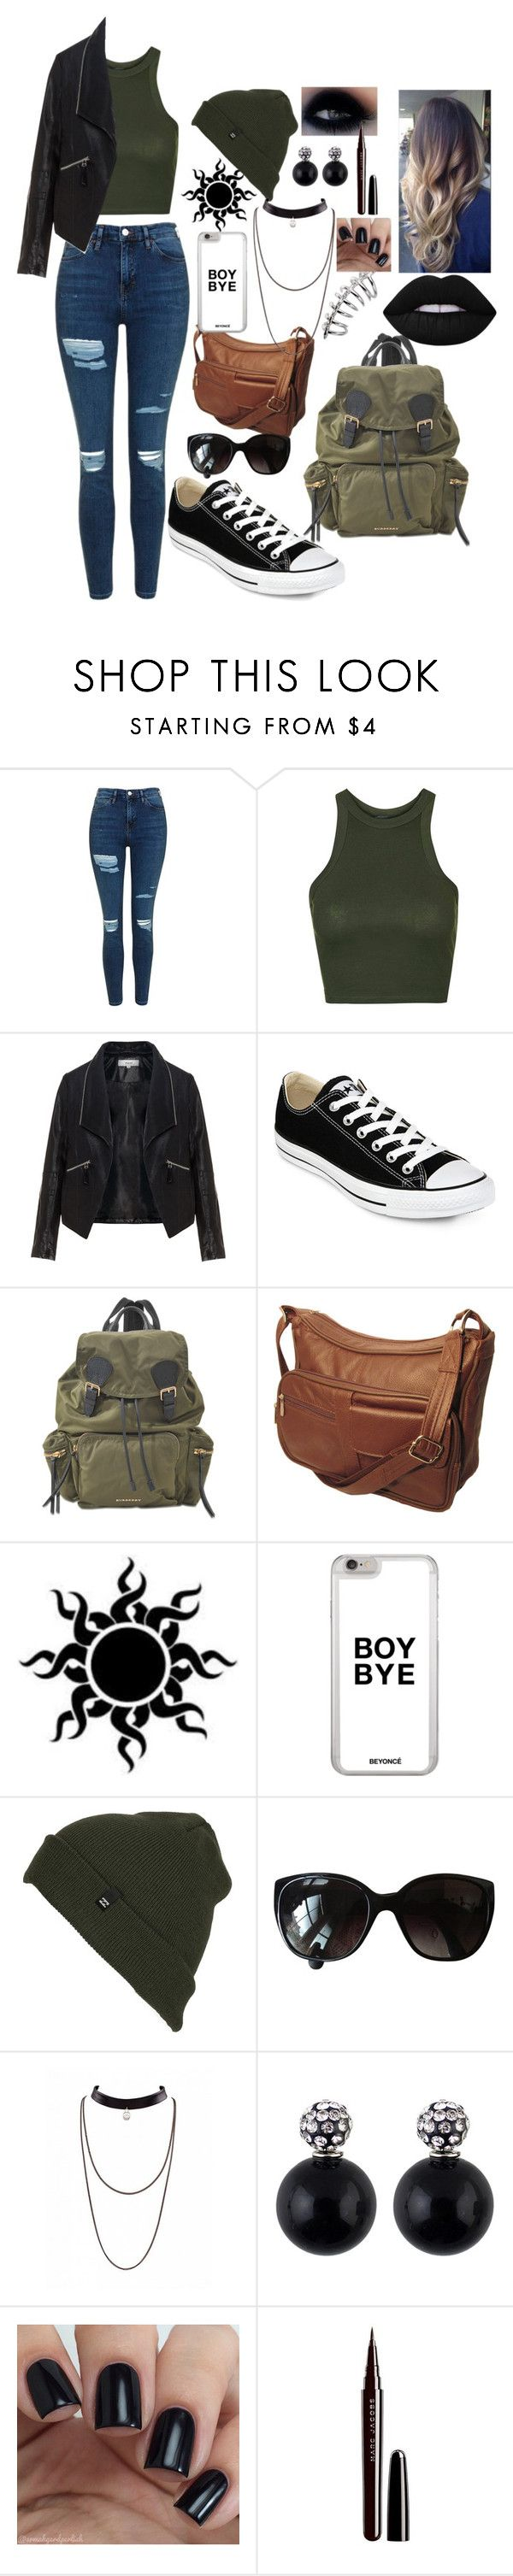 """""""Untitled #54"""" by no-play-qveen on Polyvore featuring Topshop, Zizzi, Converse, Burberry, Billabong, Chanel, Marc Jacobs and Lime Crime"""